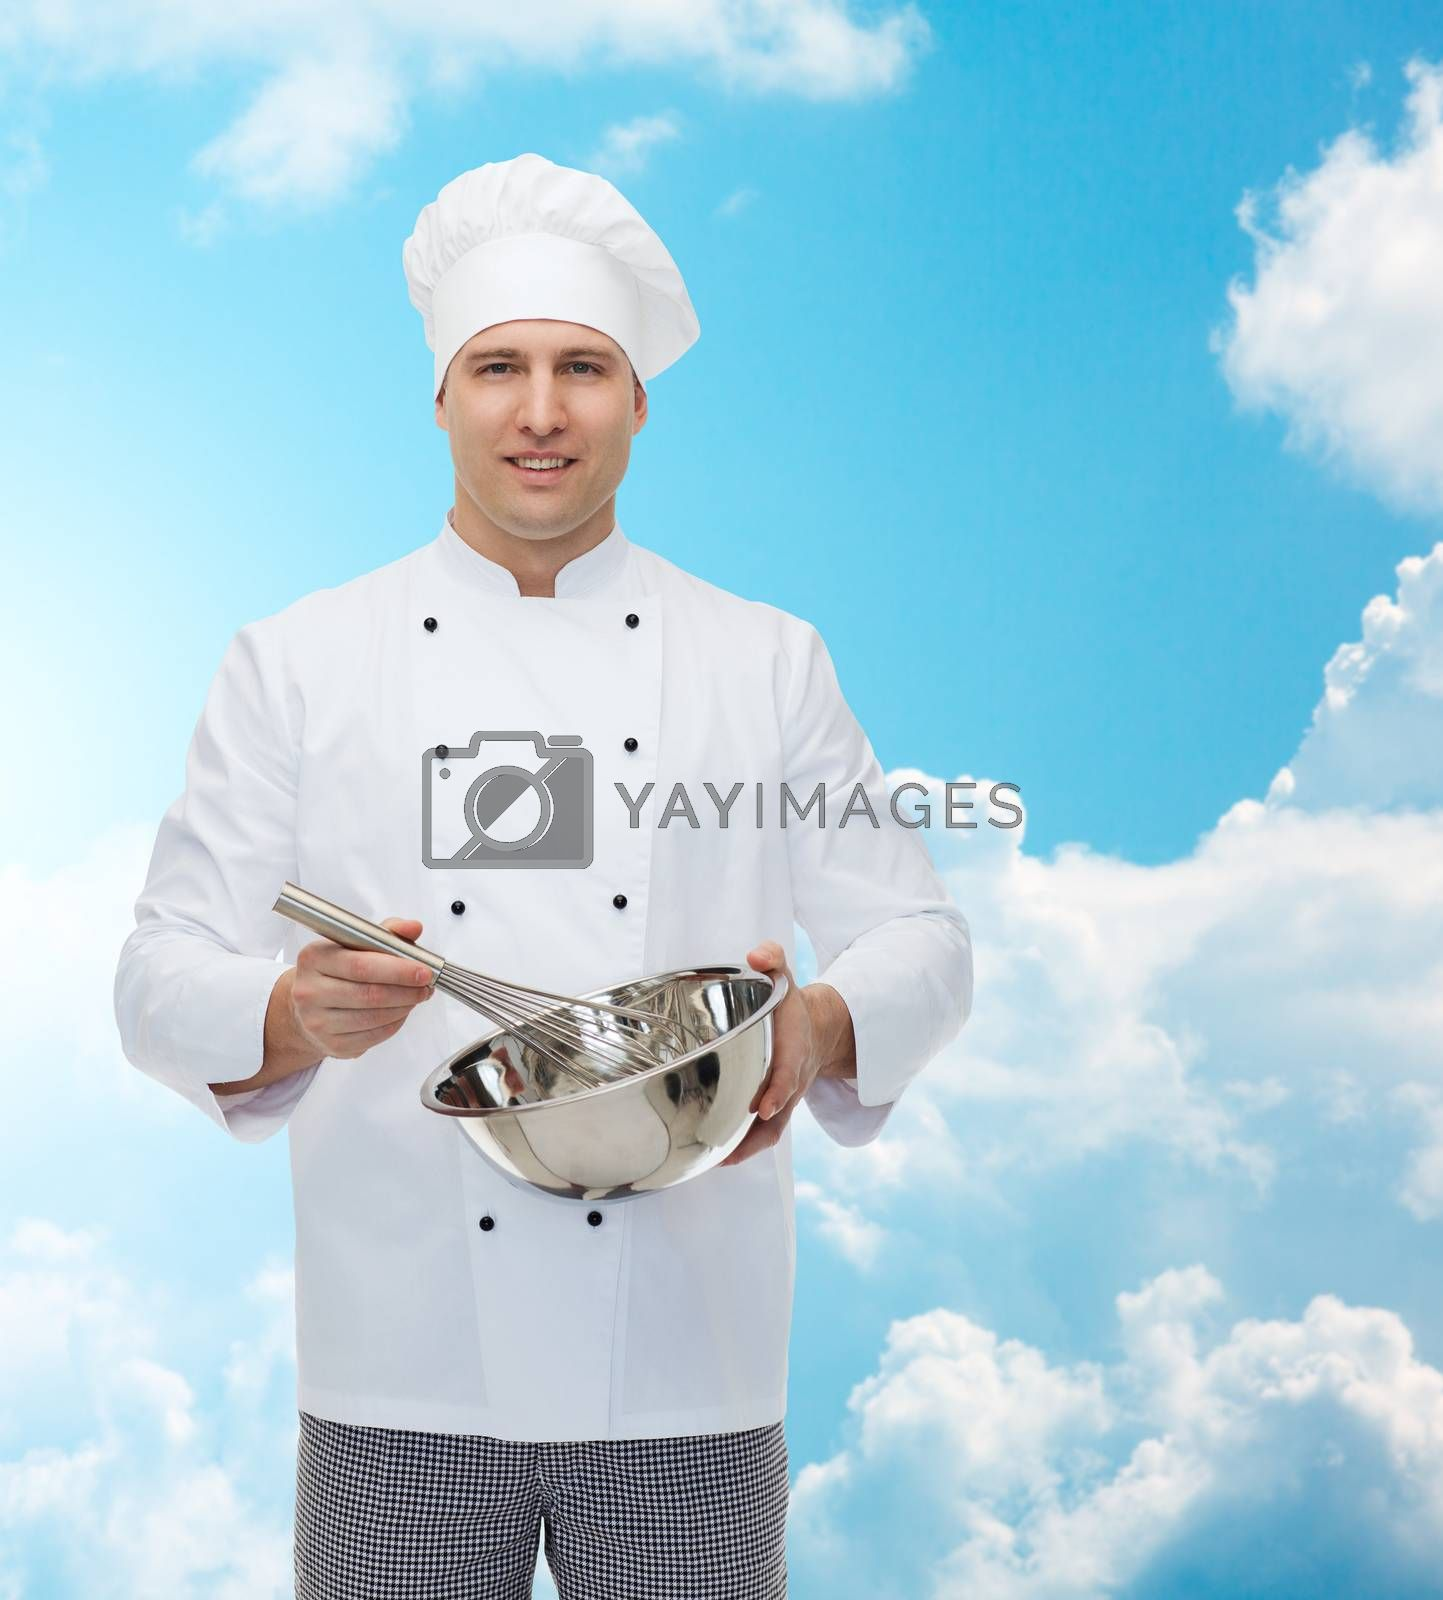 cooking, profession and people concept - happy male chef cook holding bowl and whipping something with whisk over blue sky with clouds background